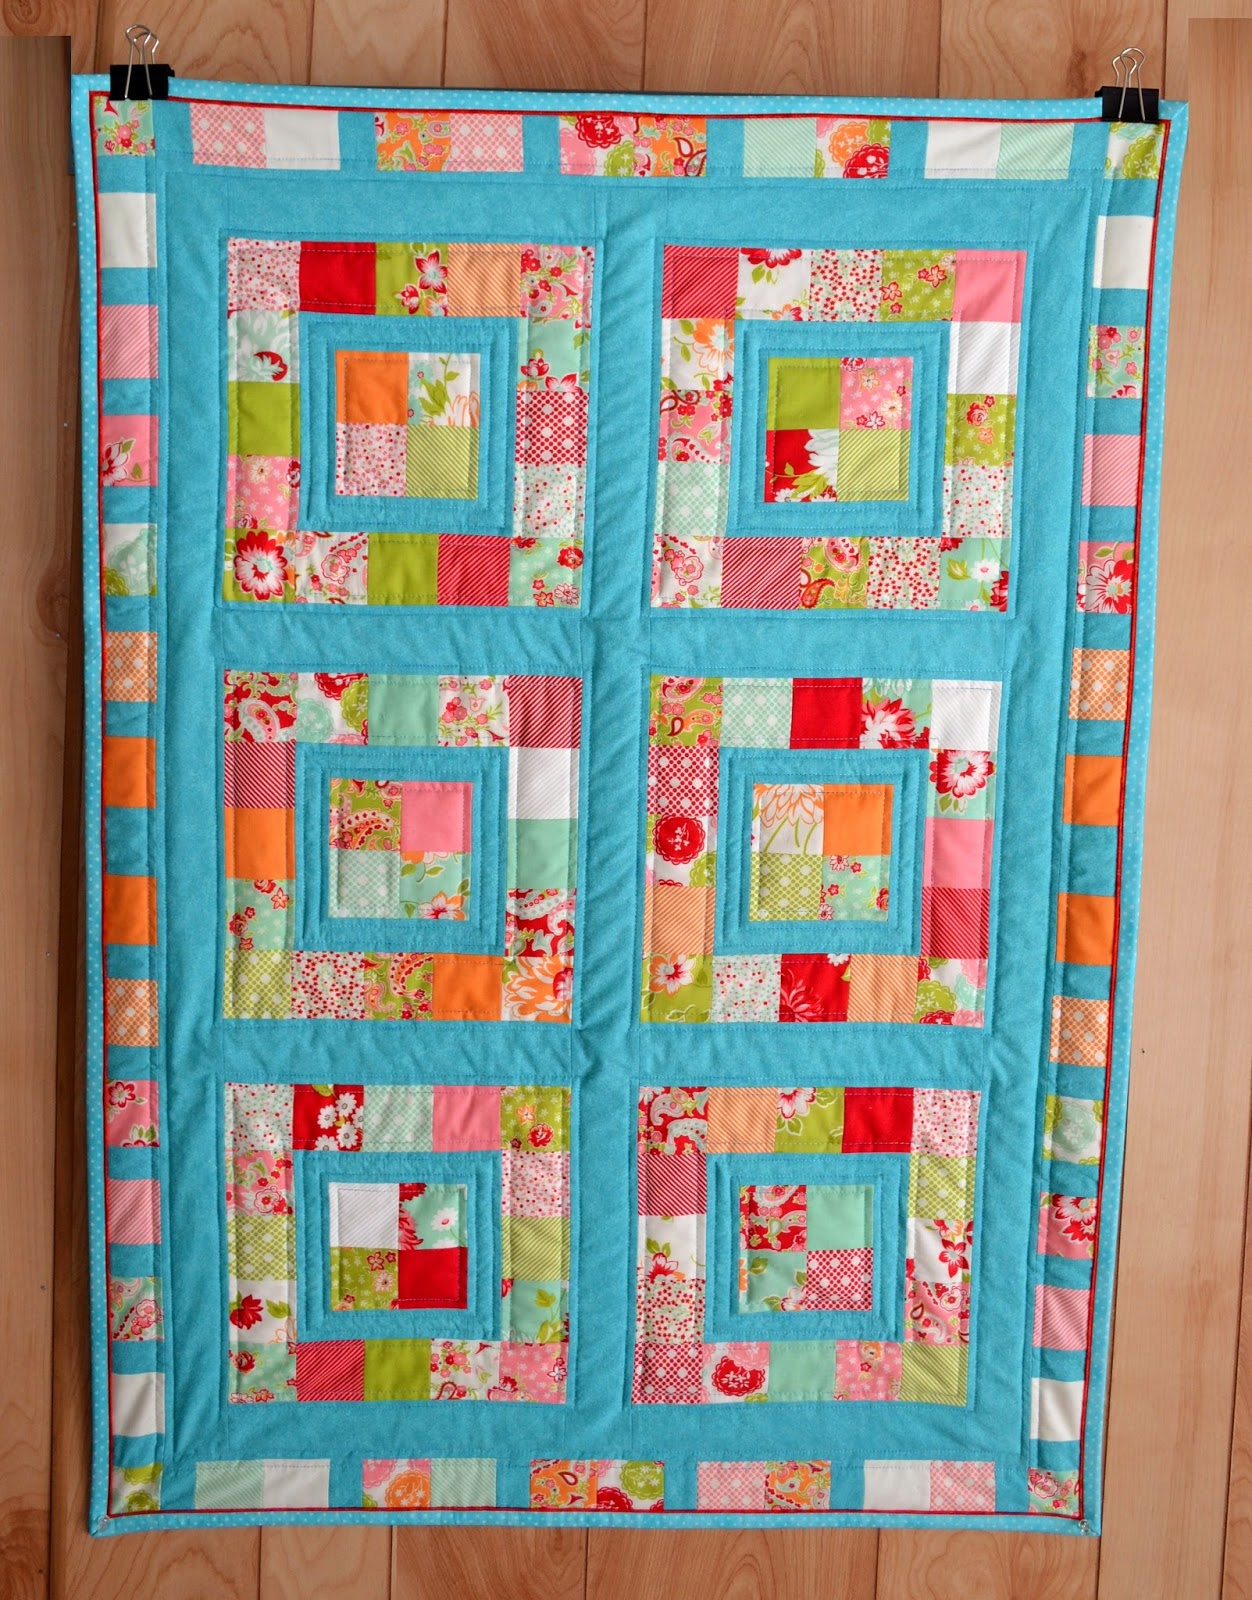 http://sewfreshquilts.blogspot.ca/2013/12/thank-goodness-its-finished-friday.html